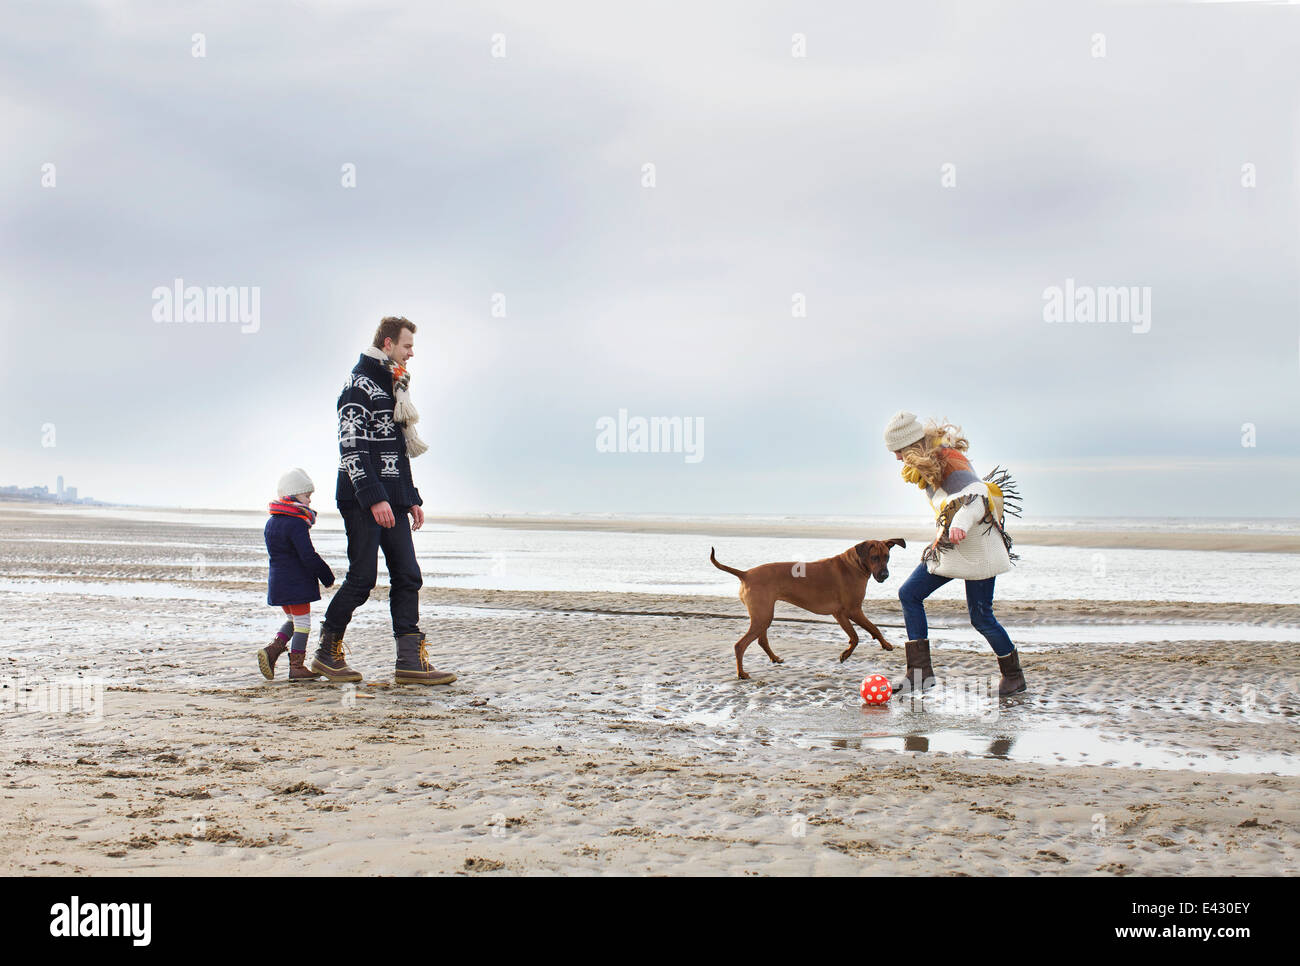 Mid adult parents with daughter and dog playing football on beach, Bloemendaal aan Zee, Netherlands Stock Photo